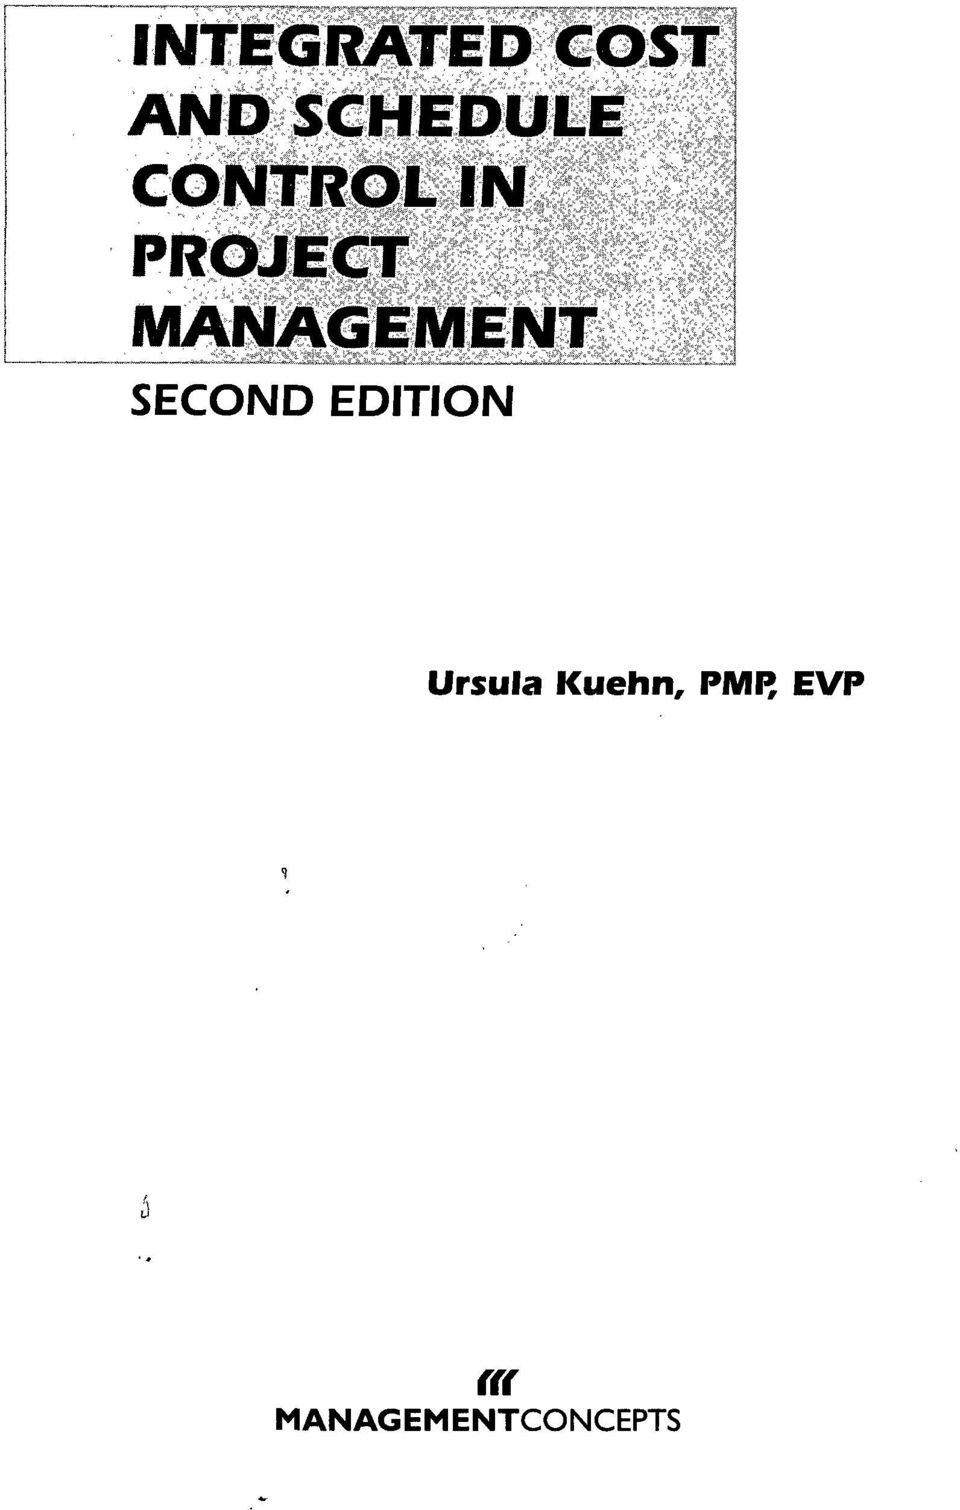 project cost management journal pdf